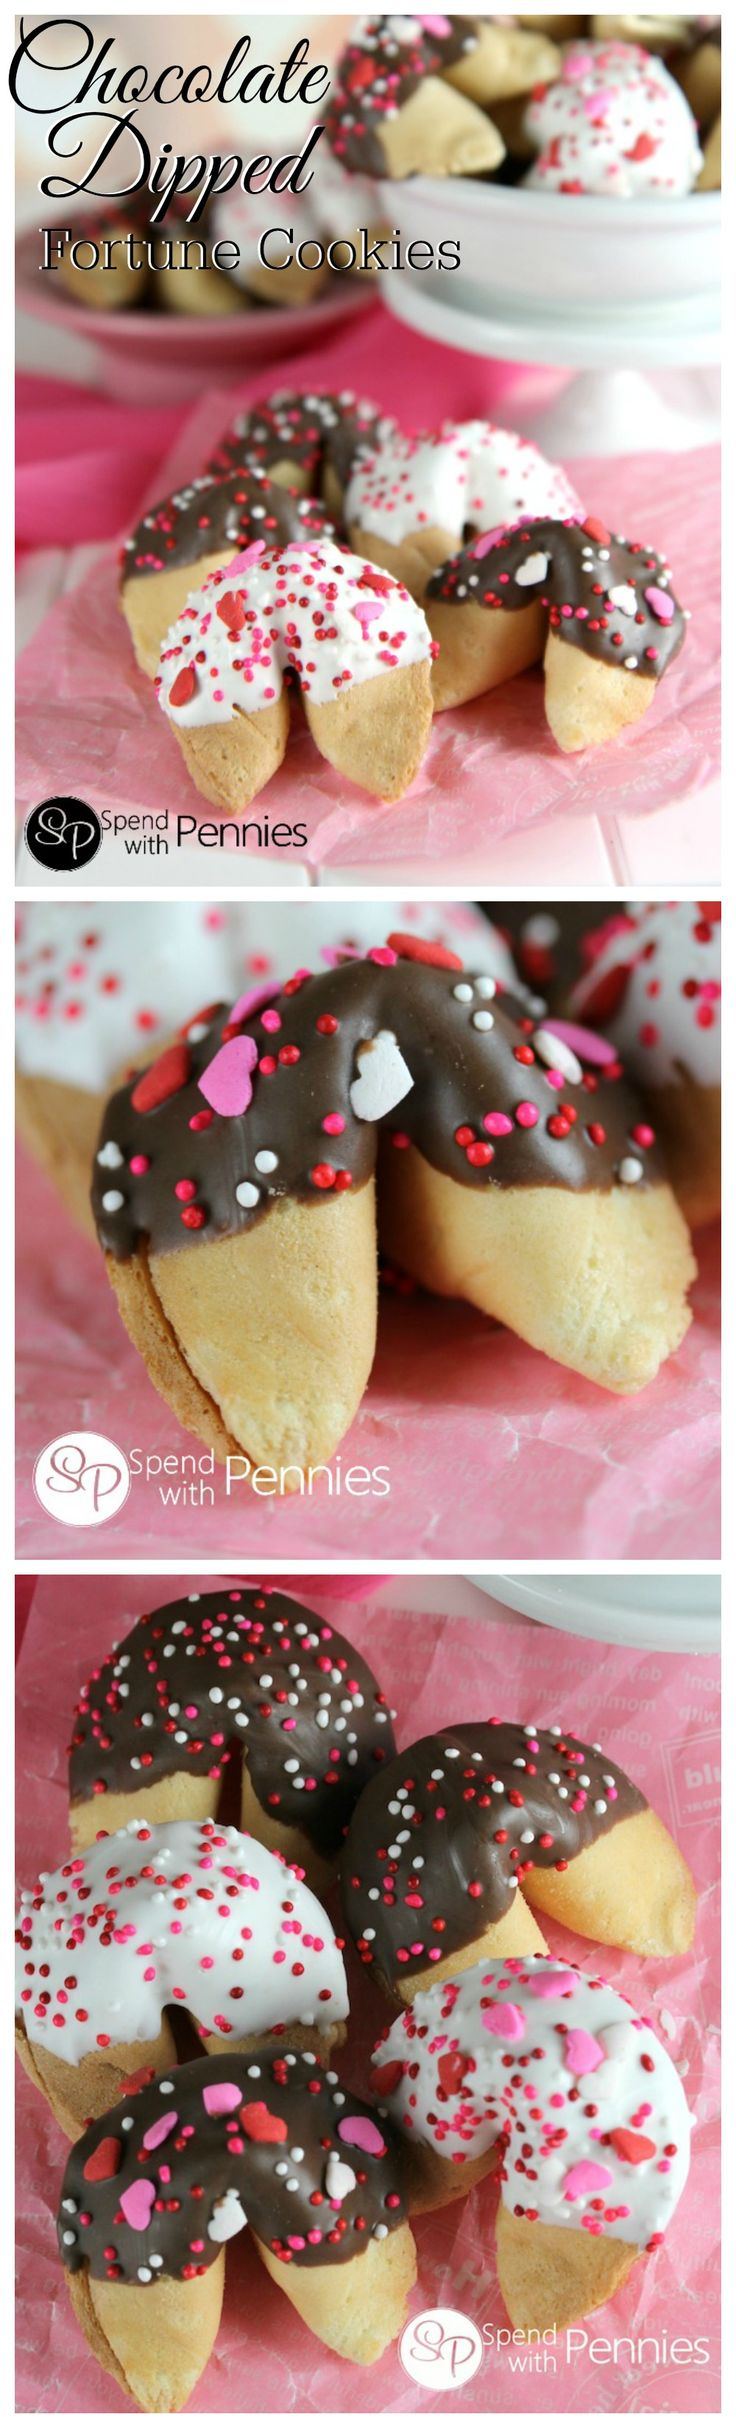 Chocolate Covered Fortune Cookies are the perfect treat!  Inexpensive, yummy and super easy to make...  change up the sprinkles for any occasion from birthday to baby shower!